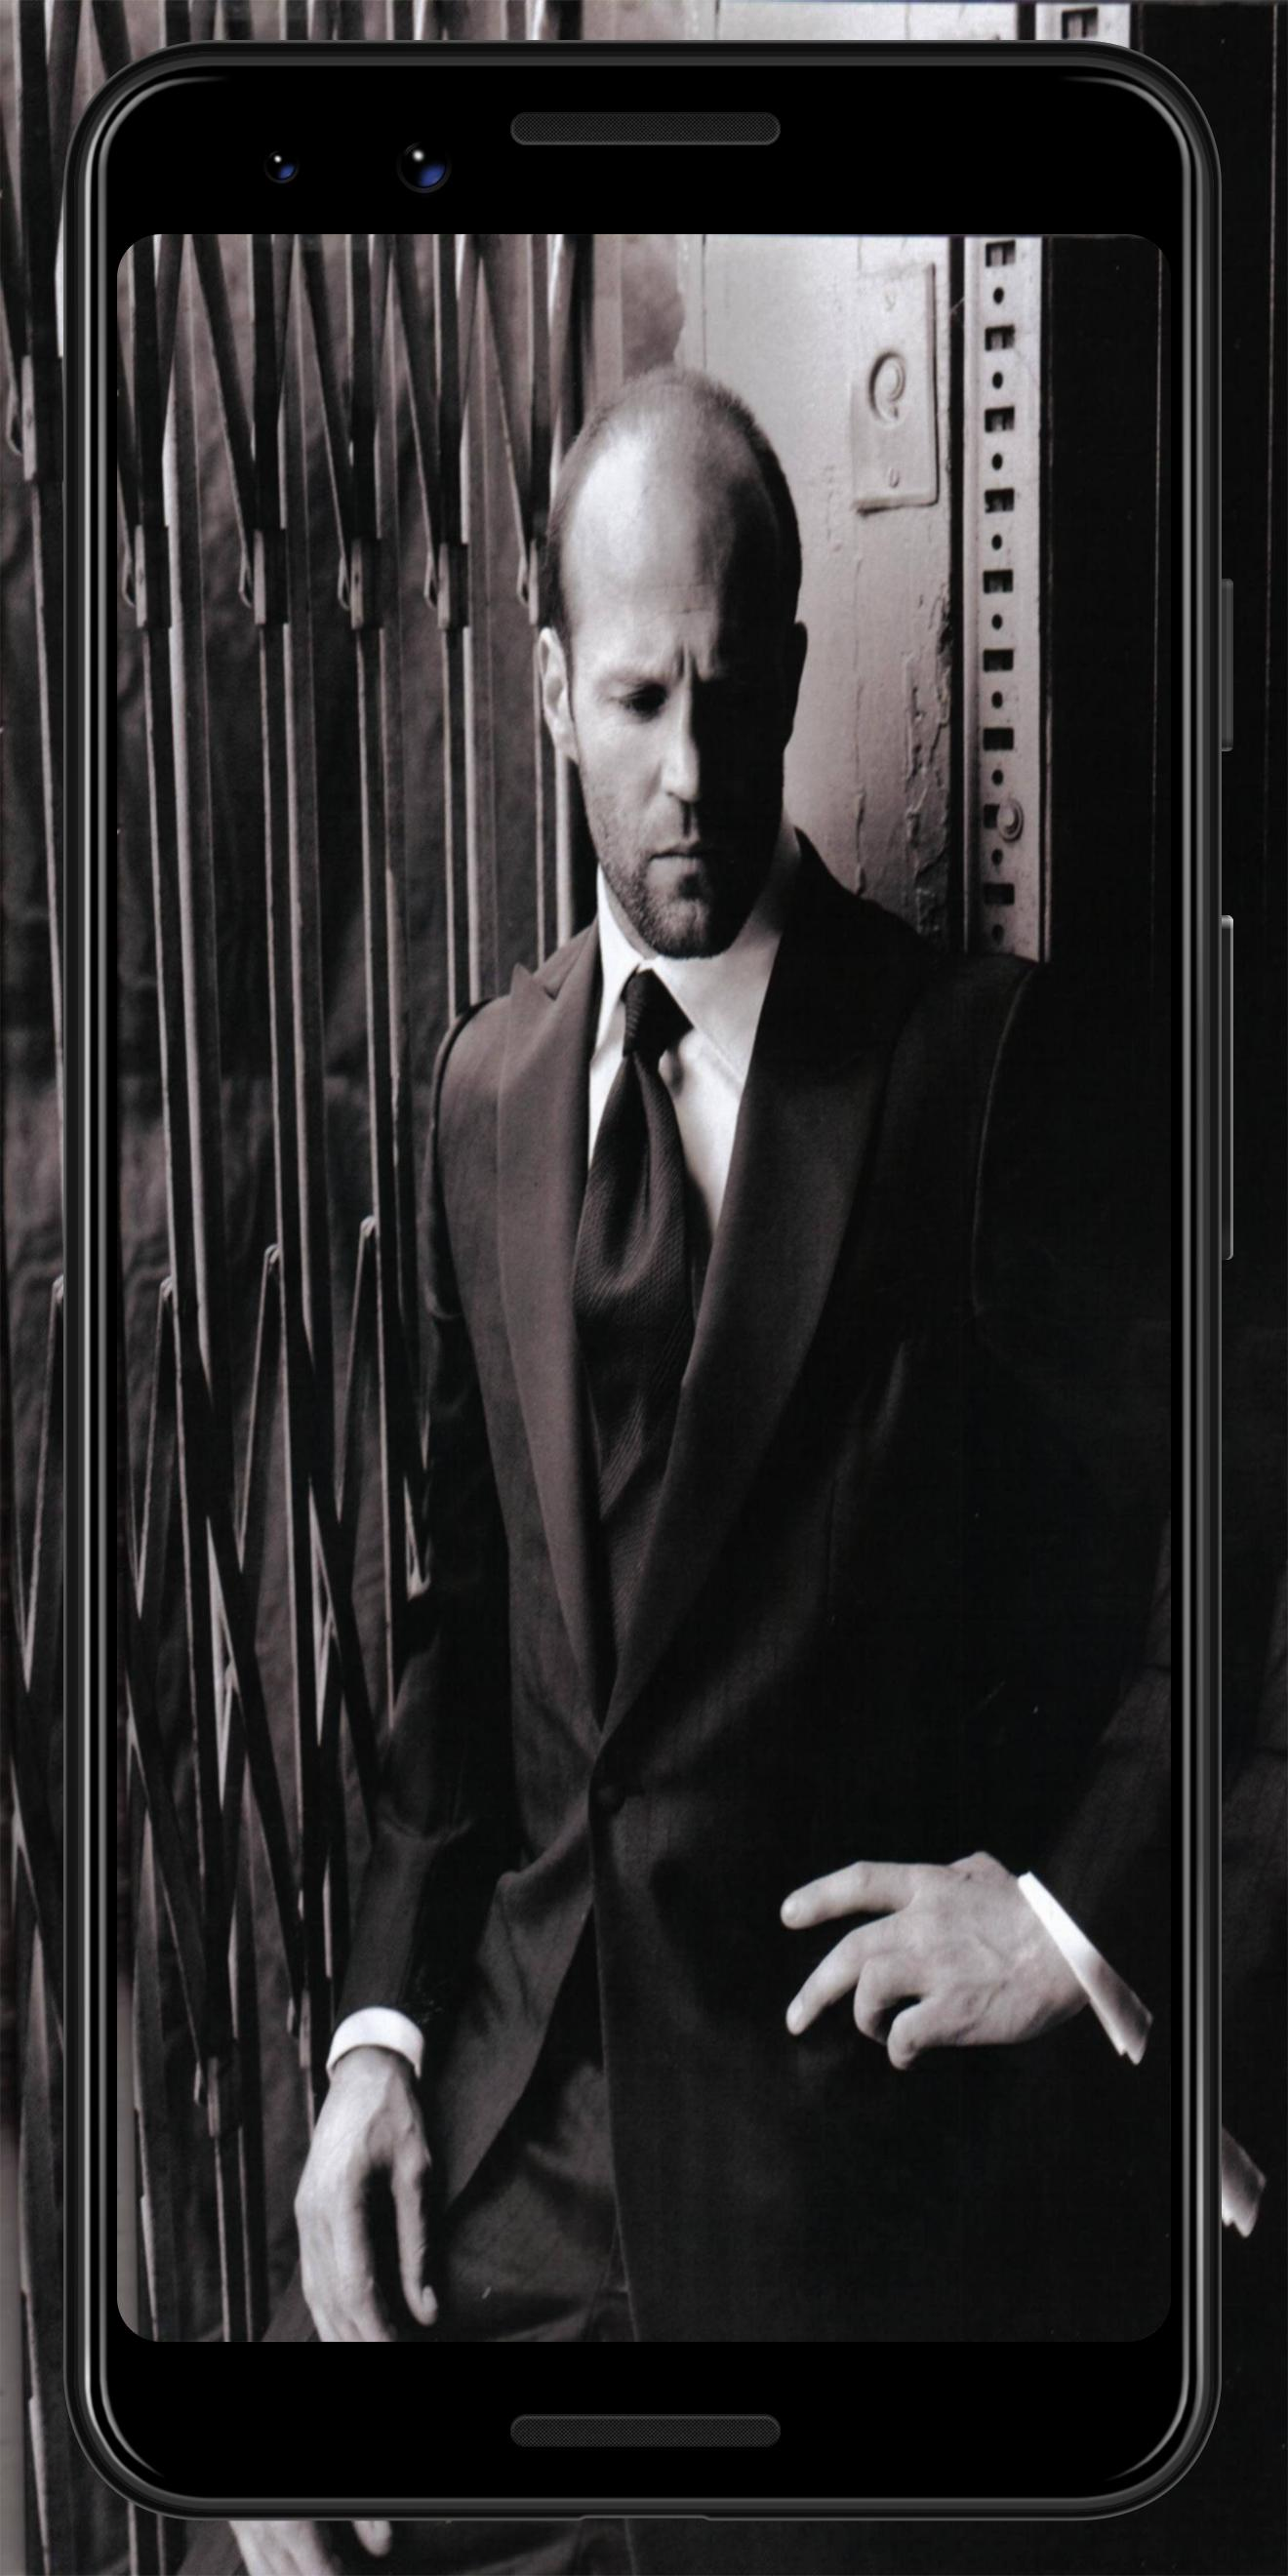 Jason Statham Wallpaper Hd For Android Apk Download